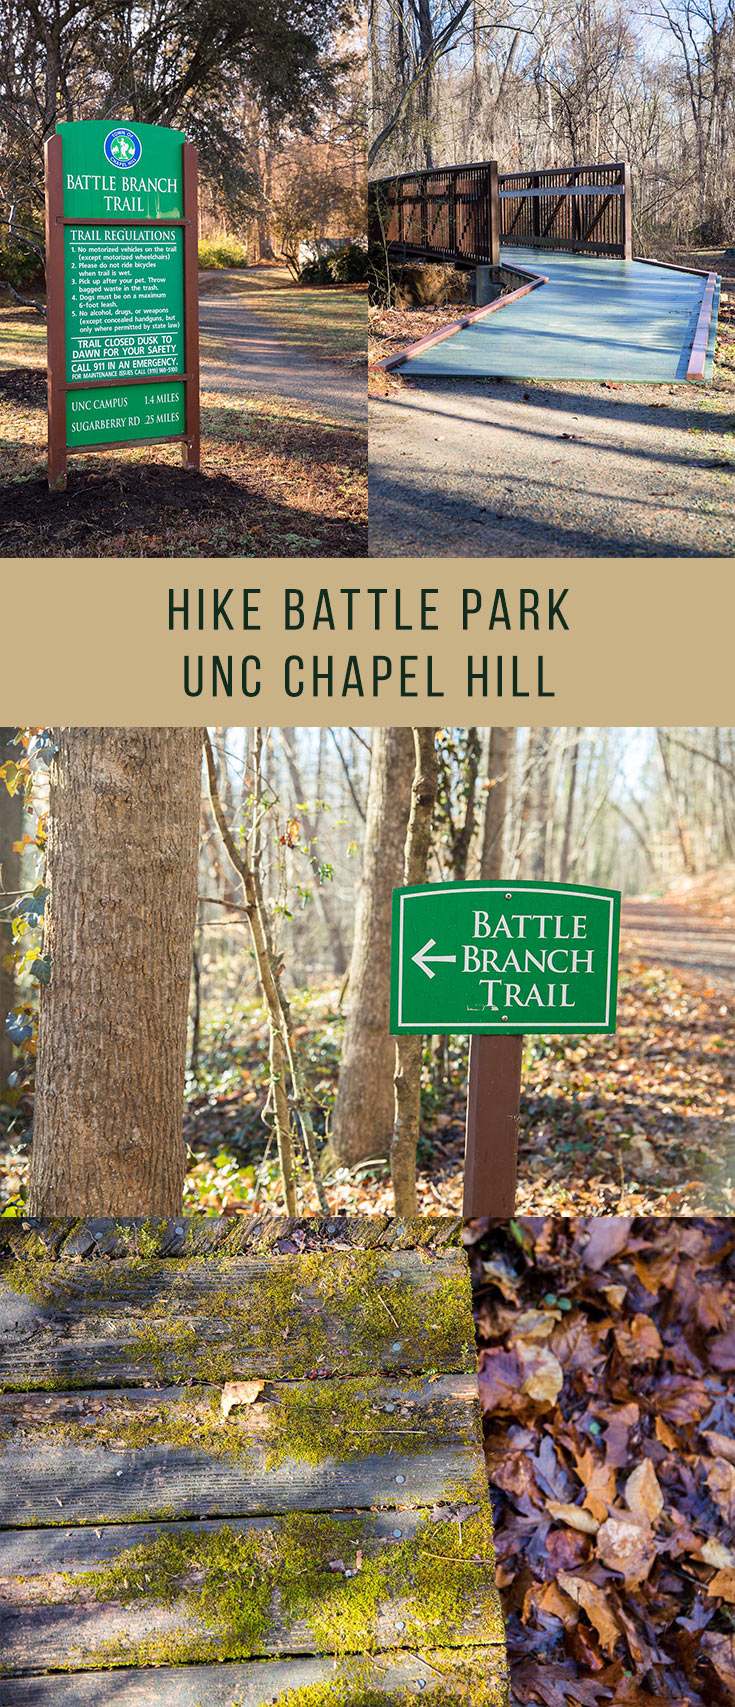 Battle Park is a 93 acre on campus at UNC Chapel Hill. Battle Branch Trail connects Battle Park and the Chapel Hill Community Center, and you can loop various trails together in Battle Park for a range of mileage for a great hike!